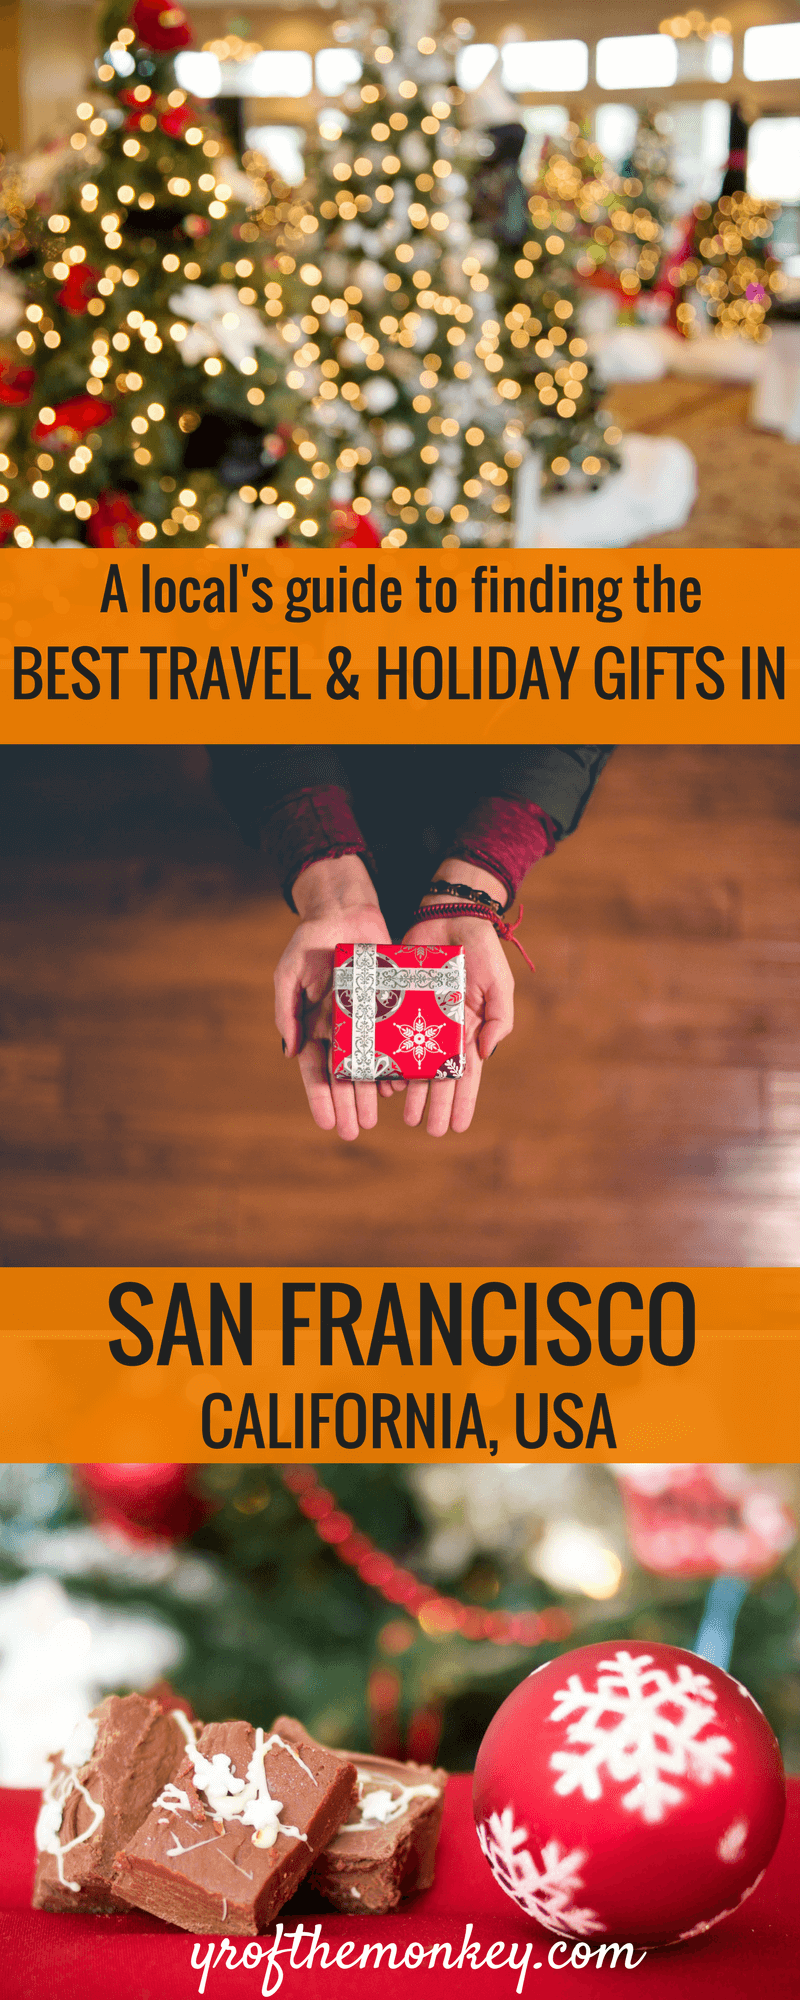 Looking for a holiday gift guide in San Francisco, California or personalized,local San Francisco Souvenirs? Read this local's guide to find the best Christmas and Thanksgiving gifts in San Francisco from the SFMade collective. Pin it to your San Francisco board. #sanfranciscosouvenirs #sanfrancisco #USA #California #travelgiftguide #holidaygifts #holidayseason #shopping #shopsmallbusiness